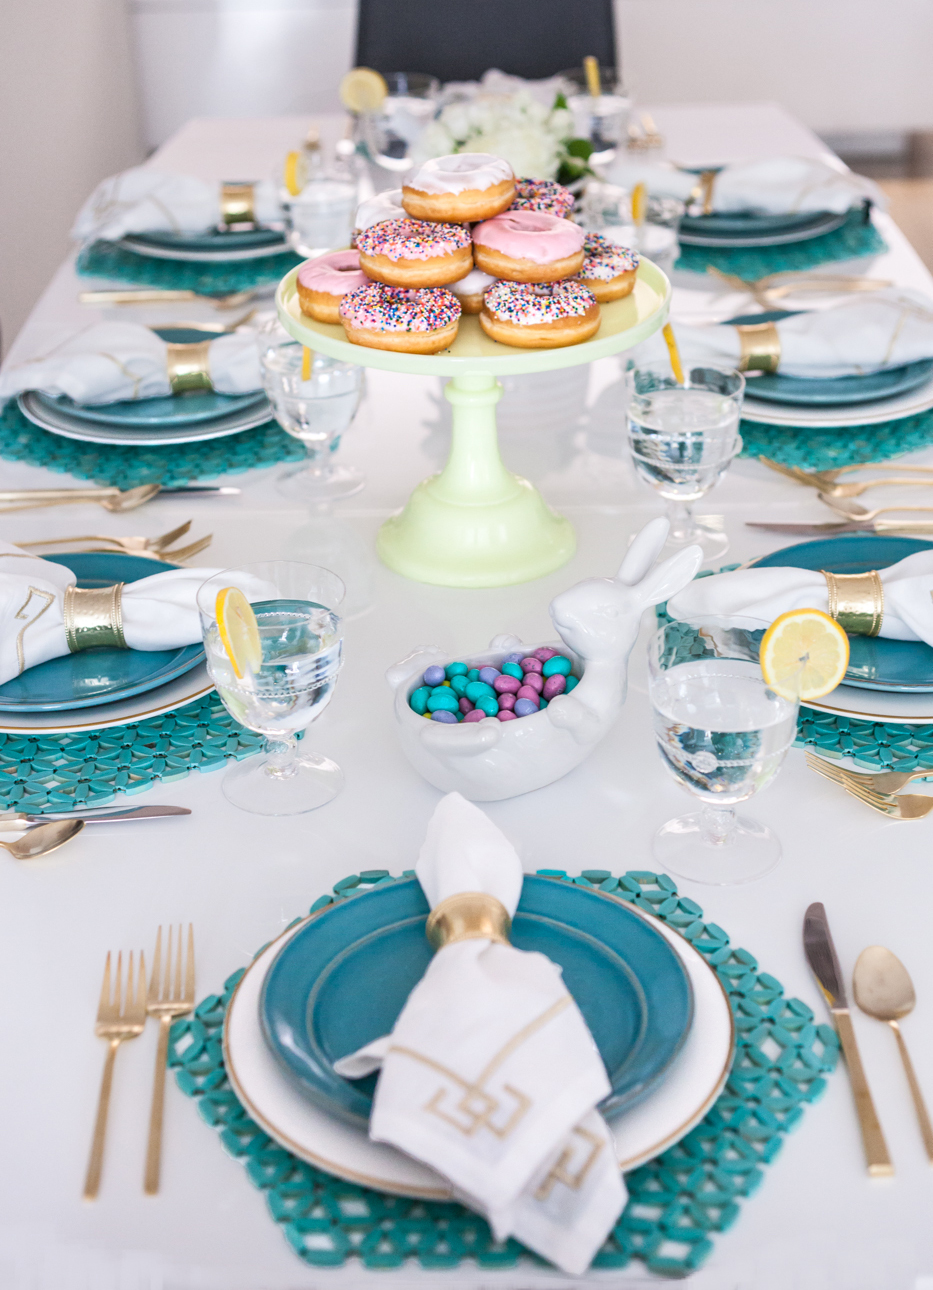 Blue And Gold Table Setting White And Gold Table Settings Dining Room Delightful Christmas